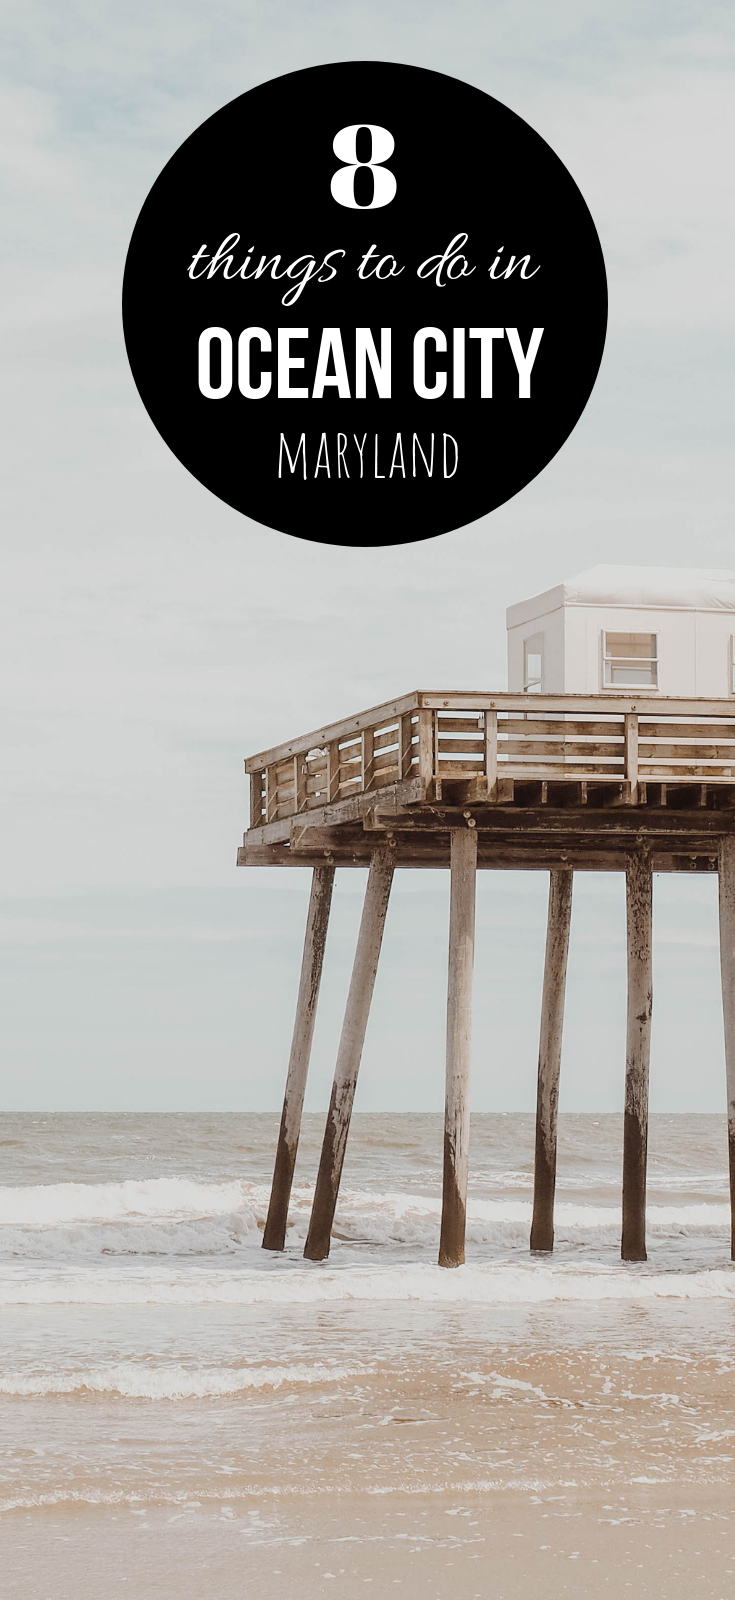 Ultimate Ocean City Maryland Guide Featuring The Top 8 Things To Do In Ocean City. #Beach | #OceanCity | #Maryland | #Travel | #Vacation